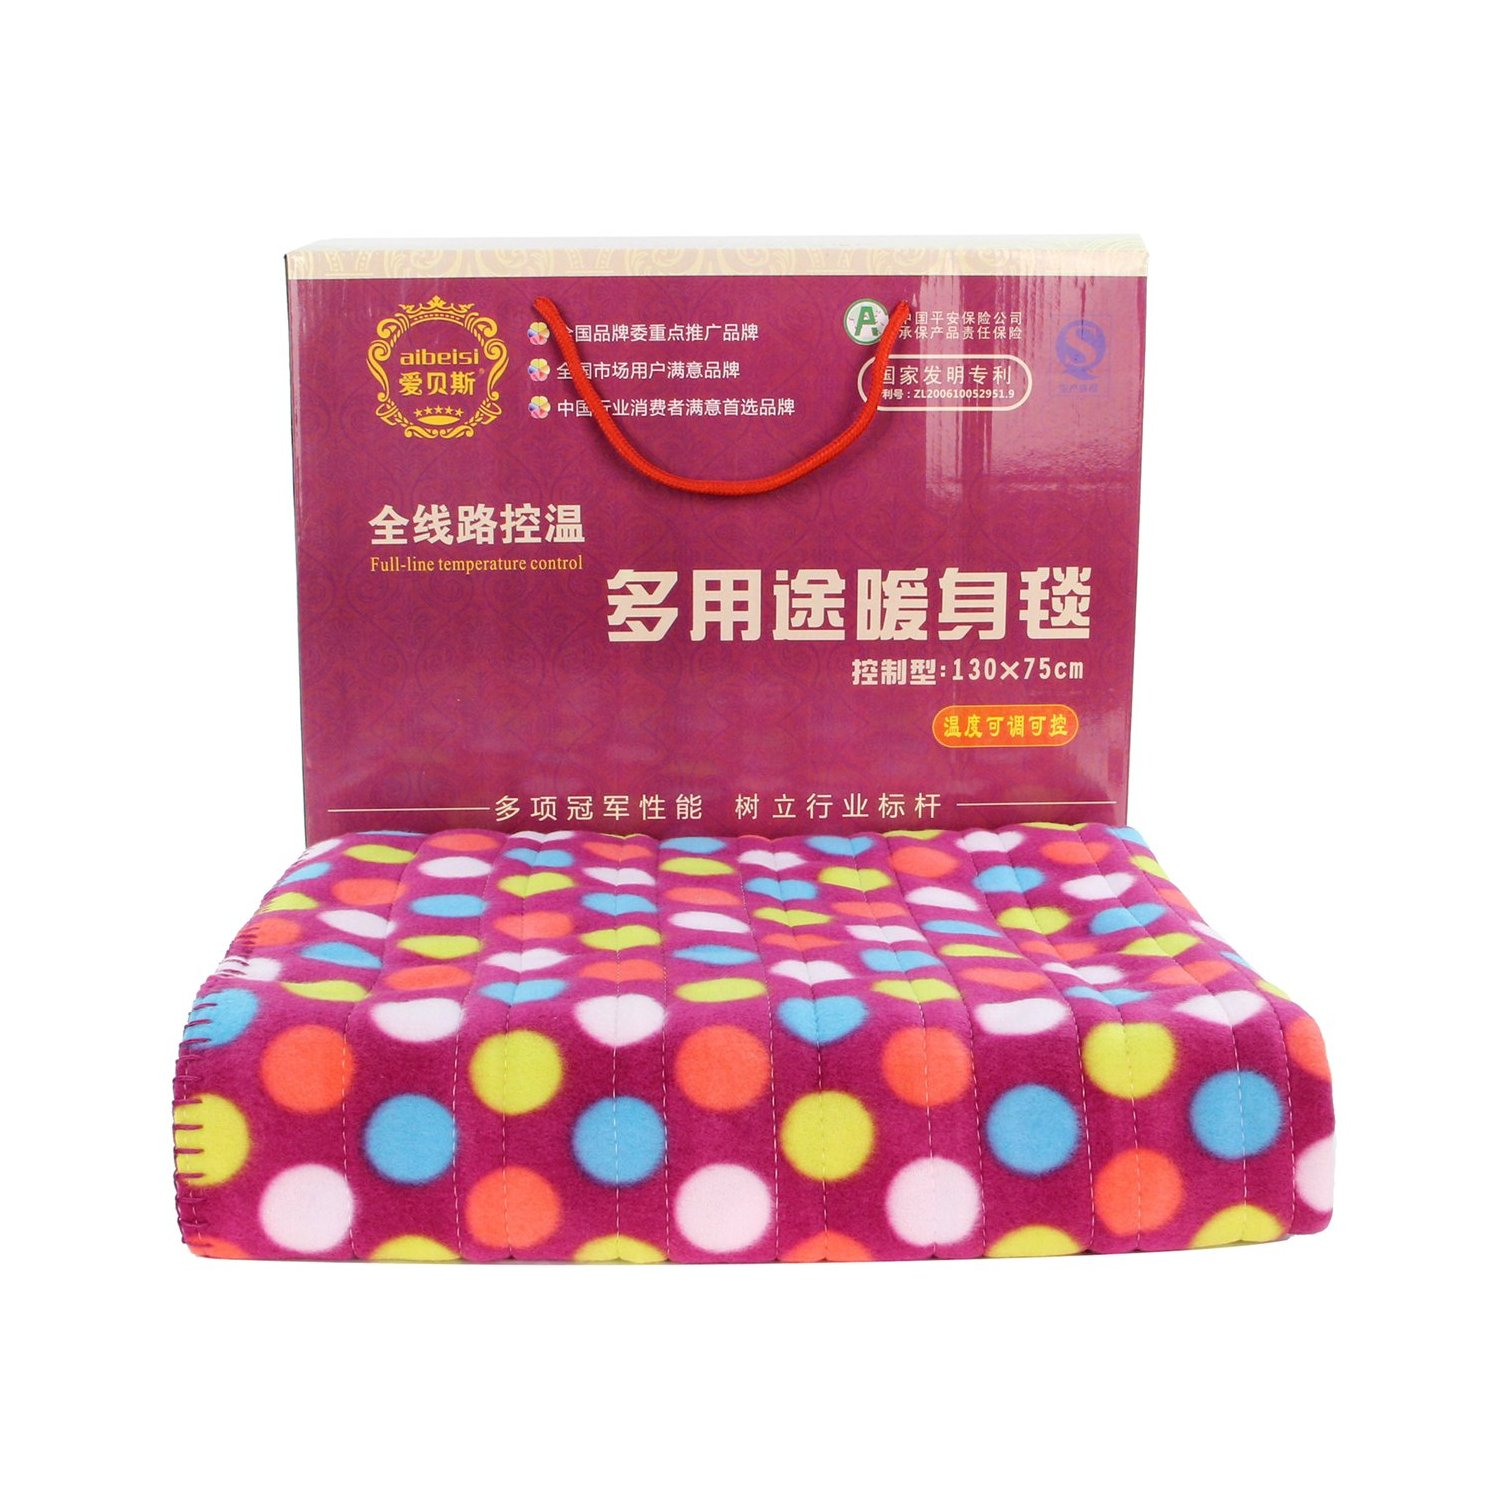 Abx single electric blanket electric blanket to warm up 66899 safety leakproof washable electric mattress genuine